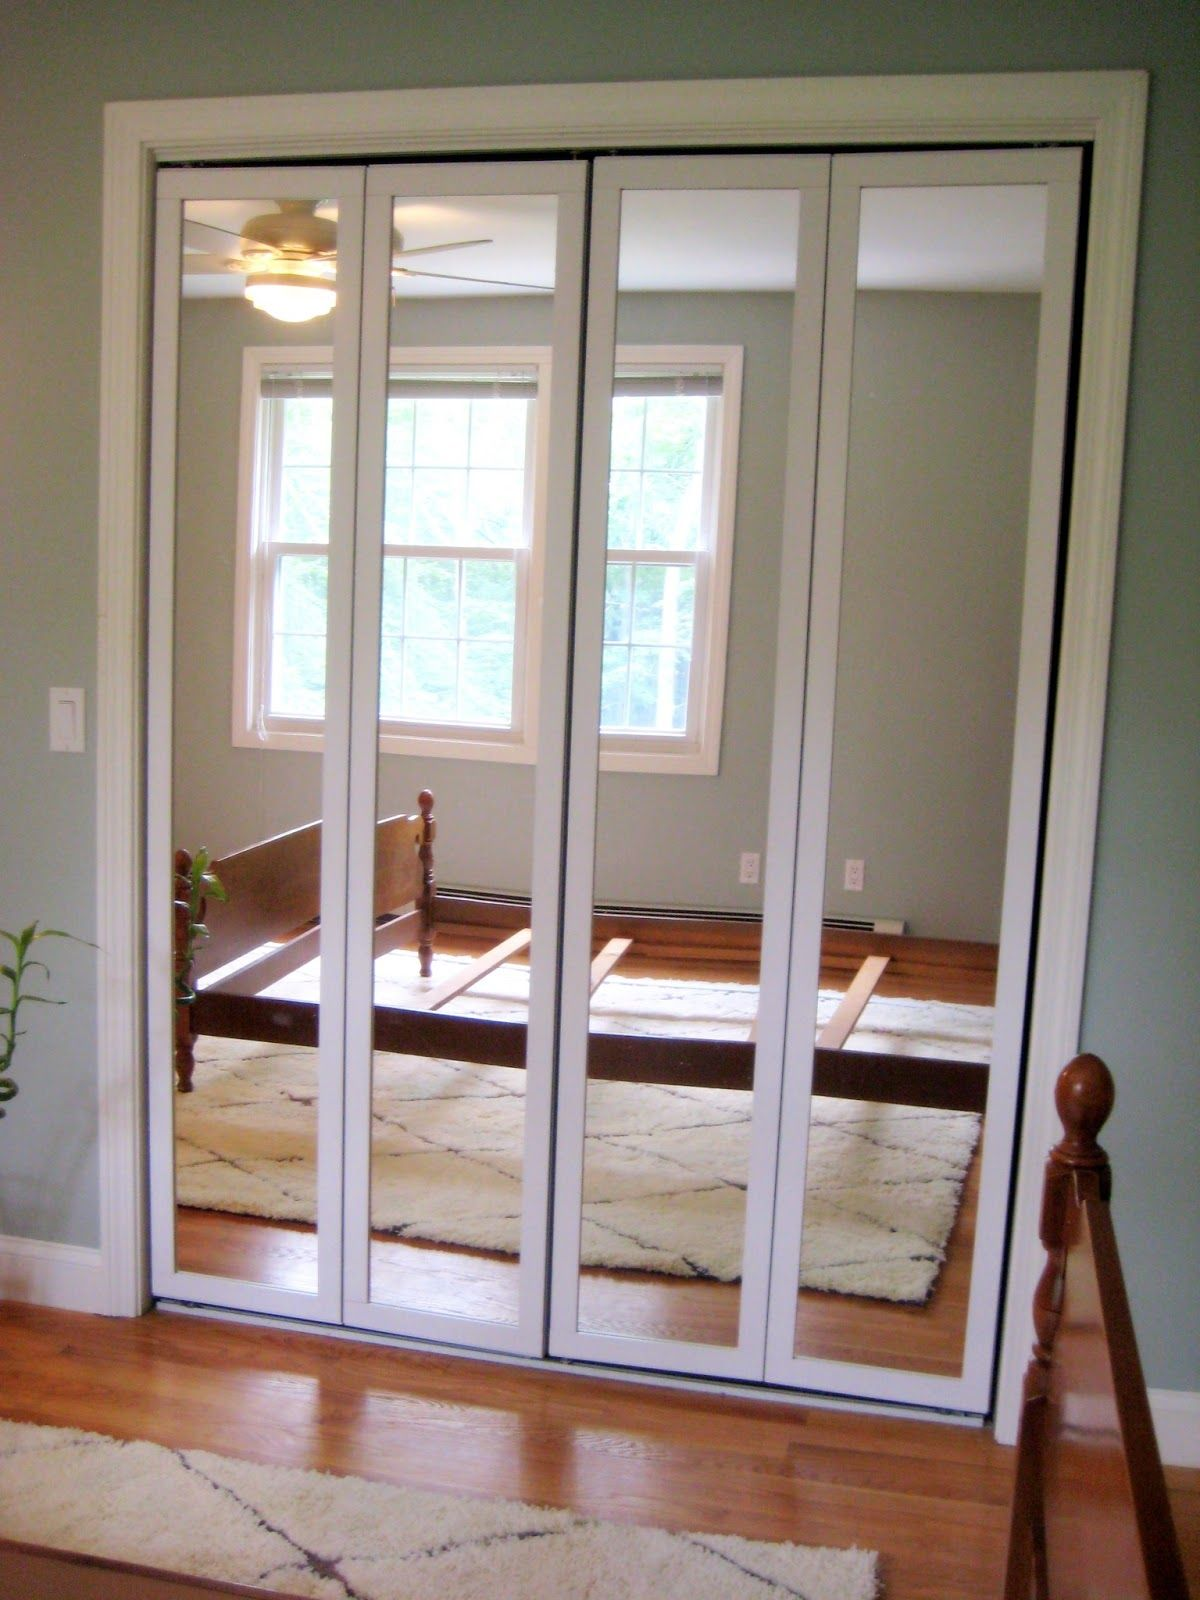 A Homeowner's Touch: Updating Bi-Fold Mirrored Doors | Del Mar ...